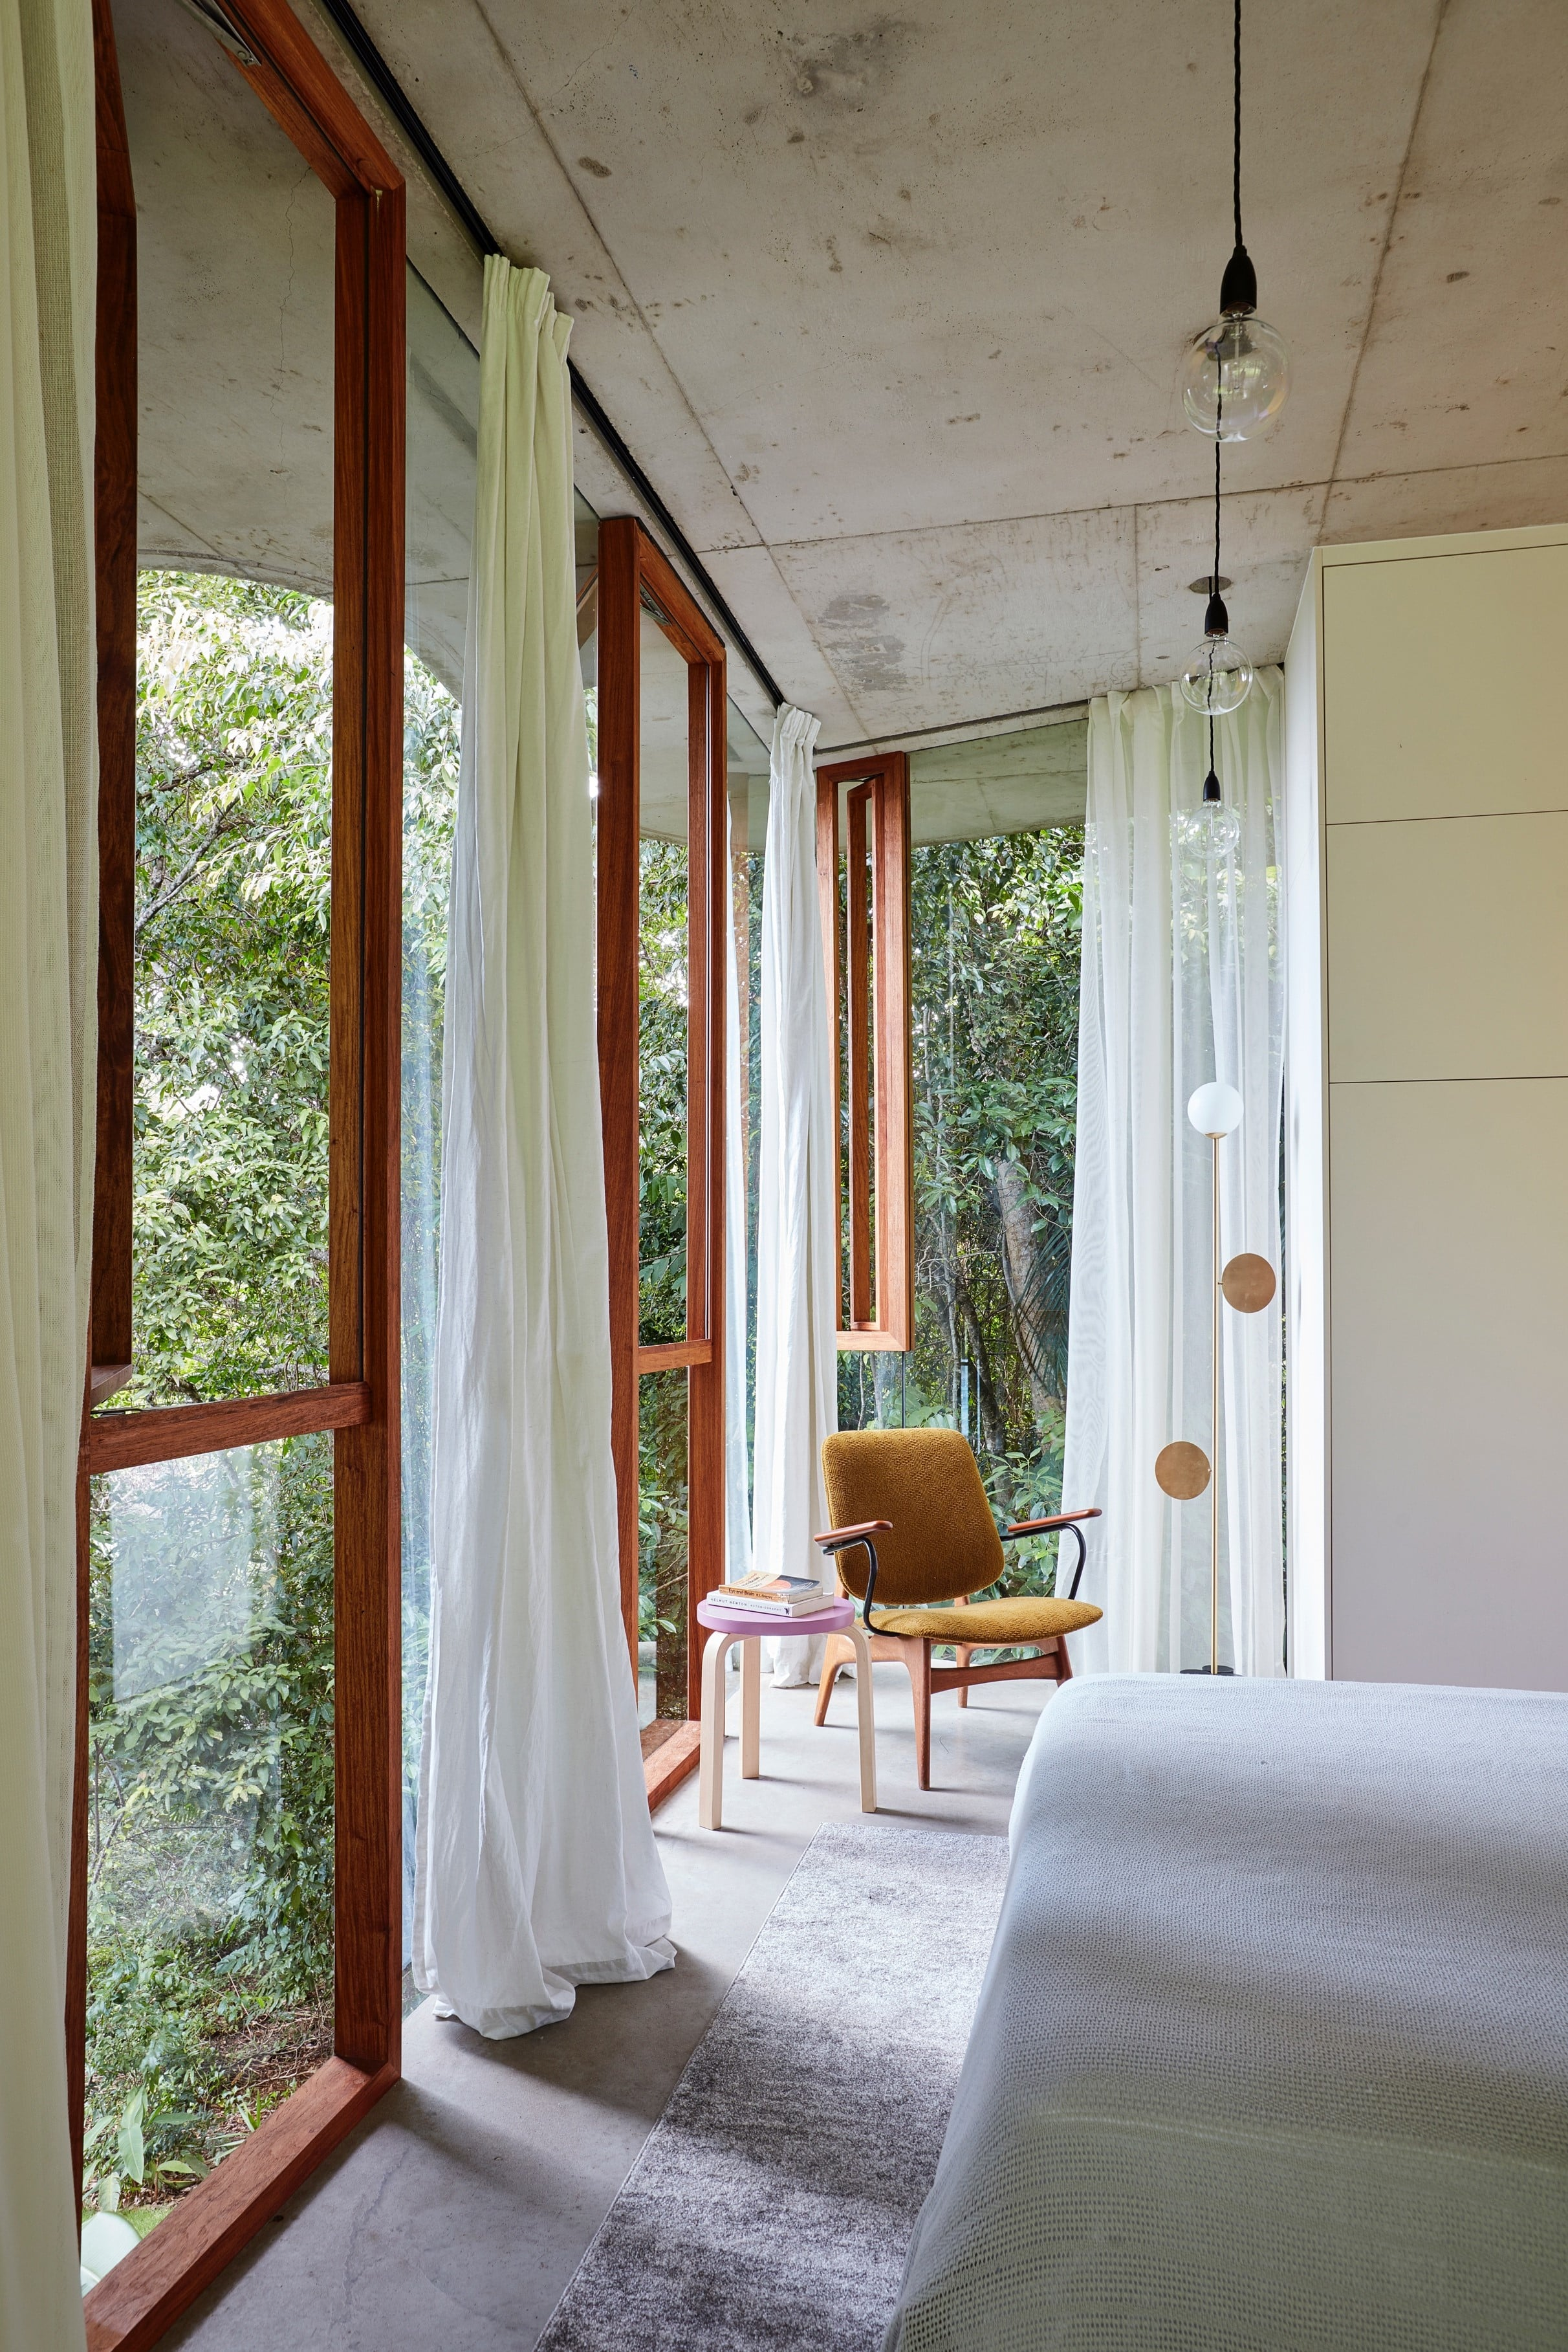 , The Use Of An External Courtyard Between The House And The Rainforest Provides Light And Ventilation